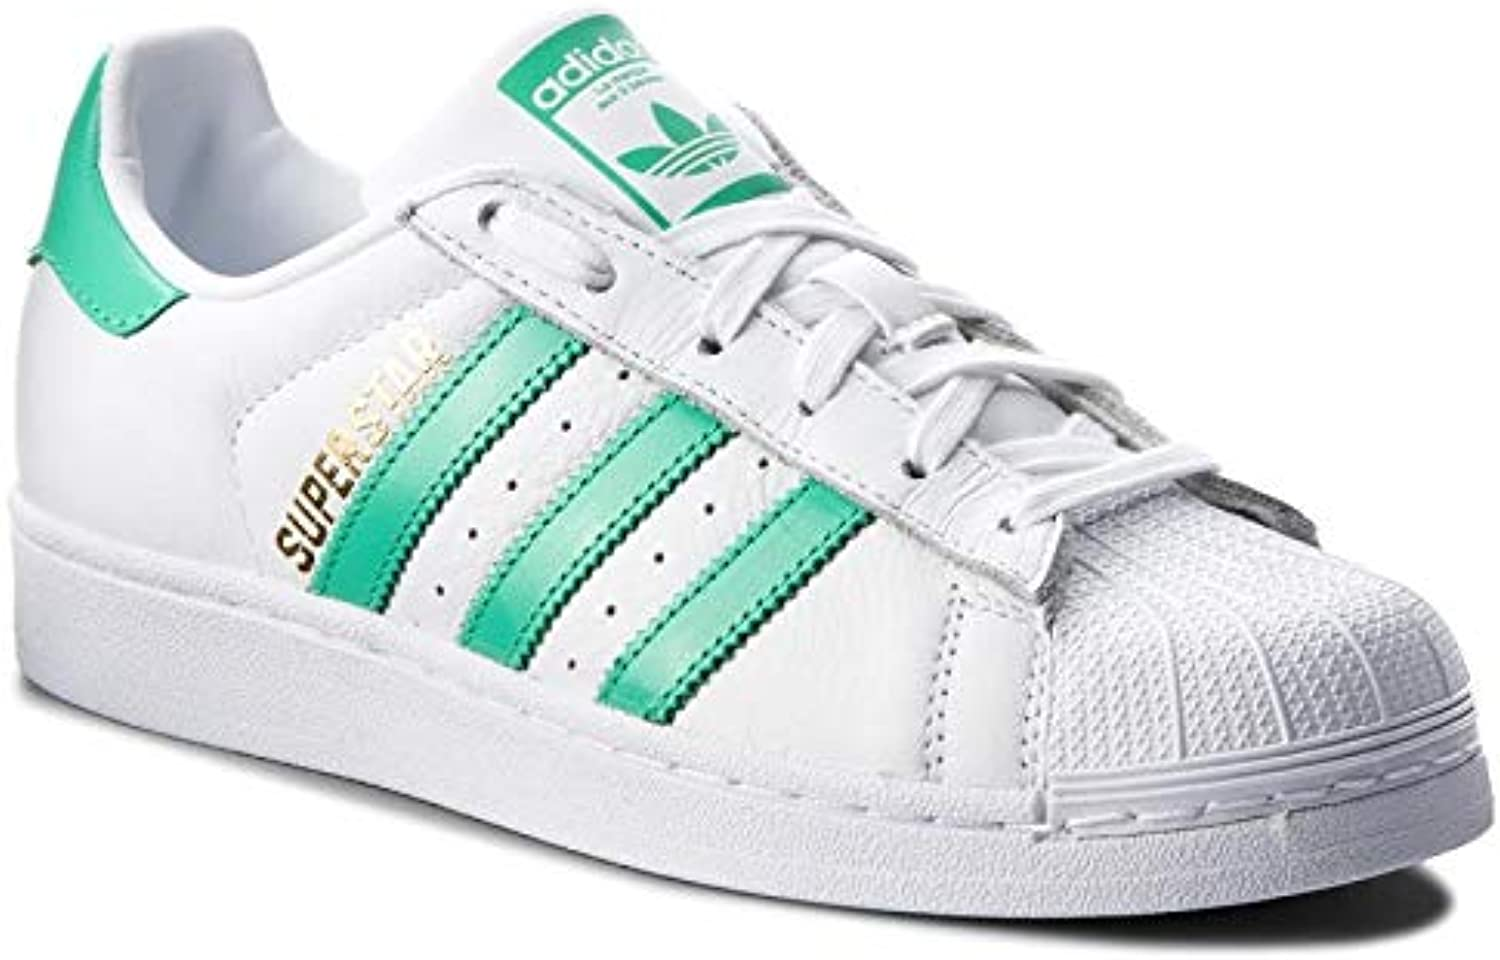 Adidas Originals Men& 39;s Superstar Fashion Sneakers B41995,Size 8